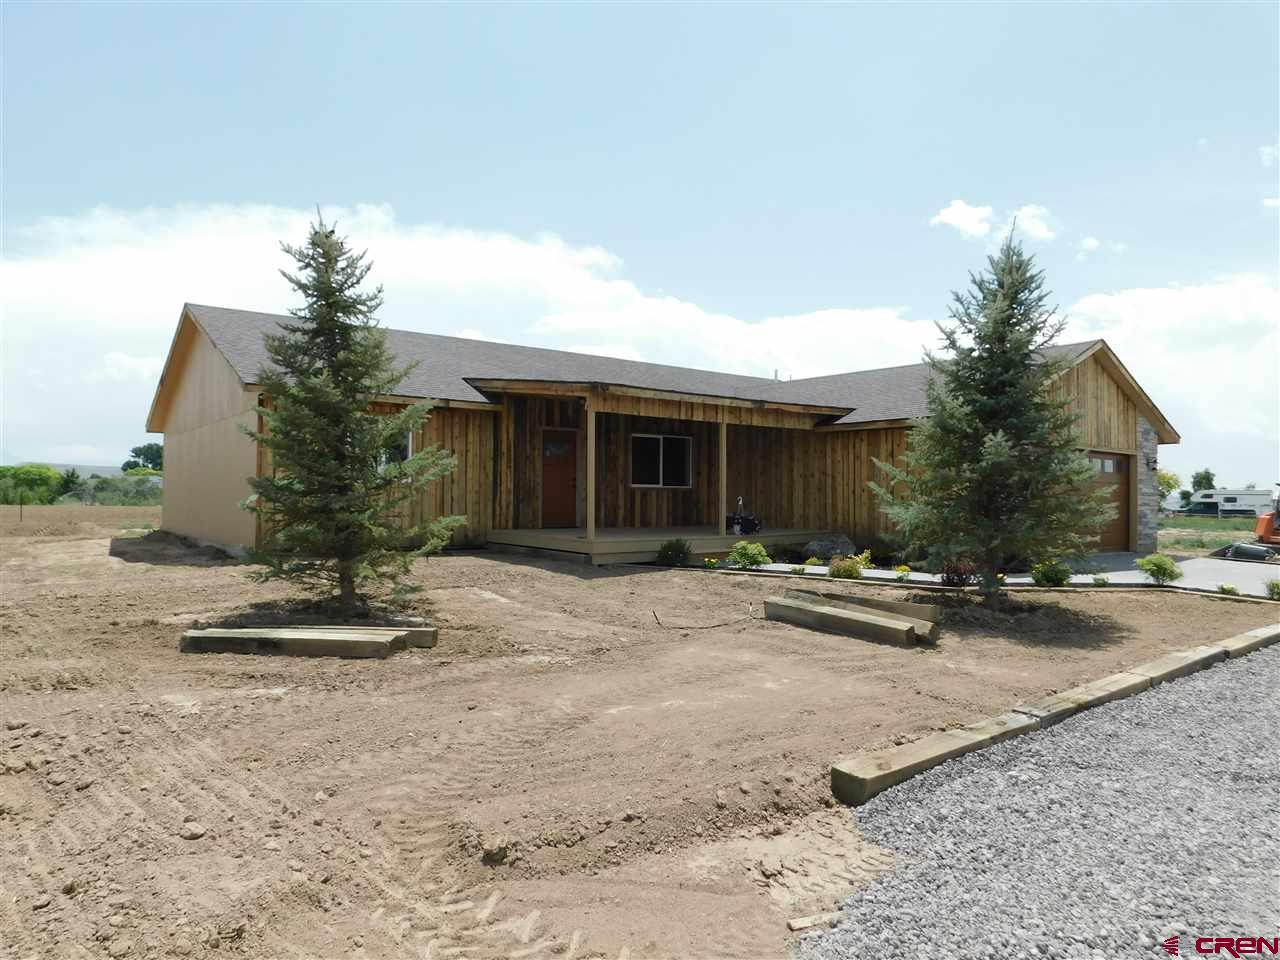 NEW CONSTRUCTION! Brand new home being built on 7.47 acres with Grand Mesa views. Three bedroom, 2 full bathrooms, ranch style home with open floor plan. Large covered back patio to enjoy the views. Gorgeous kitchen with all appliances included. Vaulted ceiling. Large laundry room also includes your new washer and dryer. This land provides many opportunities for any buyer to enjoy. 8 Shares of Orchard City Irrigation District water. Horses allowed. Good location for Delta or Cedaredge schools. Pictures to be updated throughout the construction process.